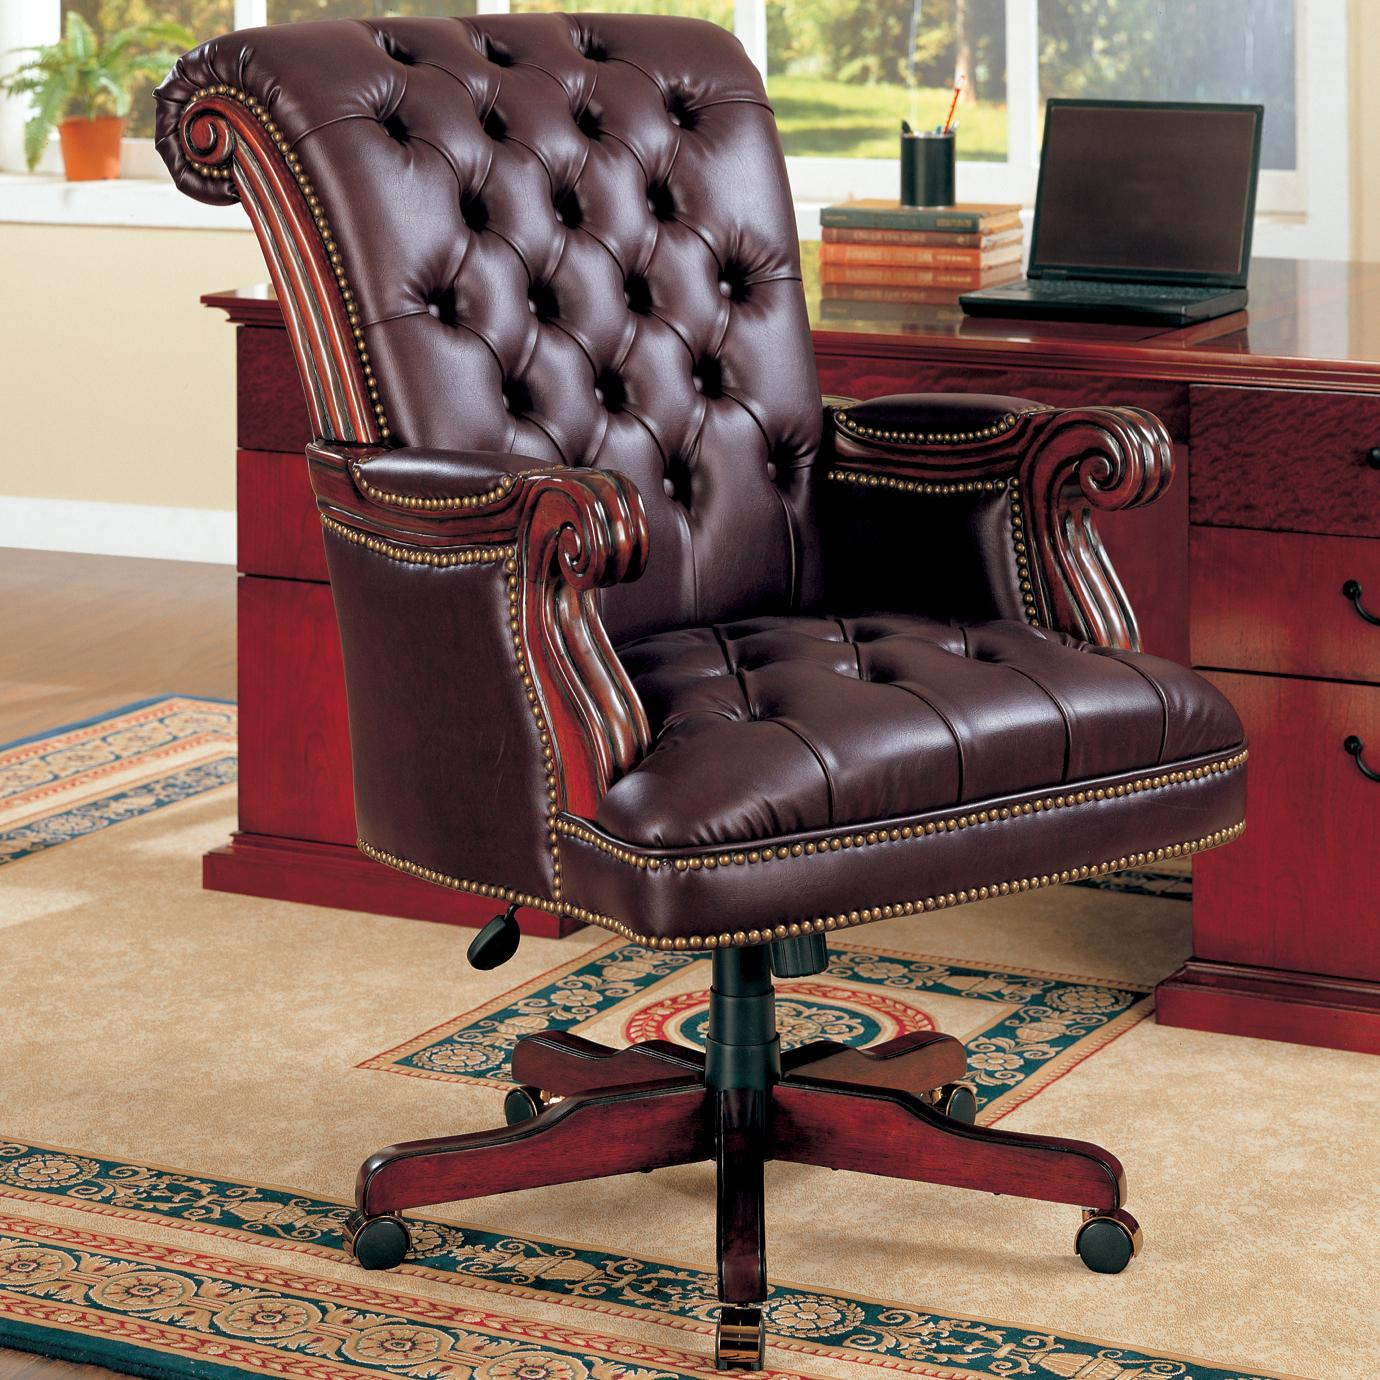 Luxury Office Chair My Decorative Luxury Brown Leather Office Chair